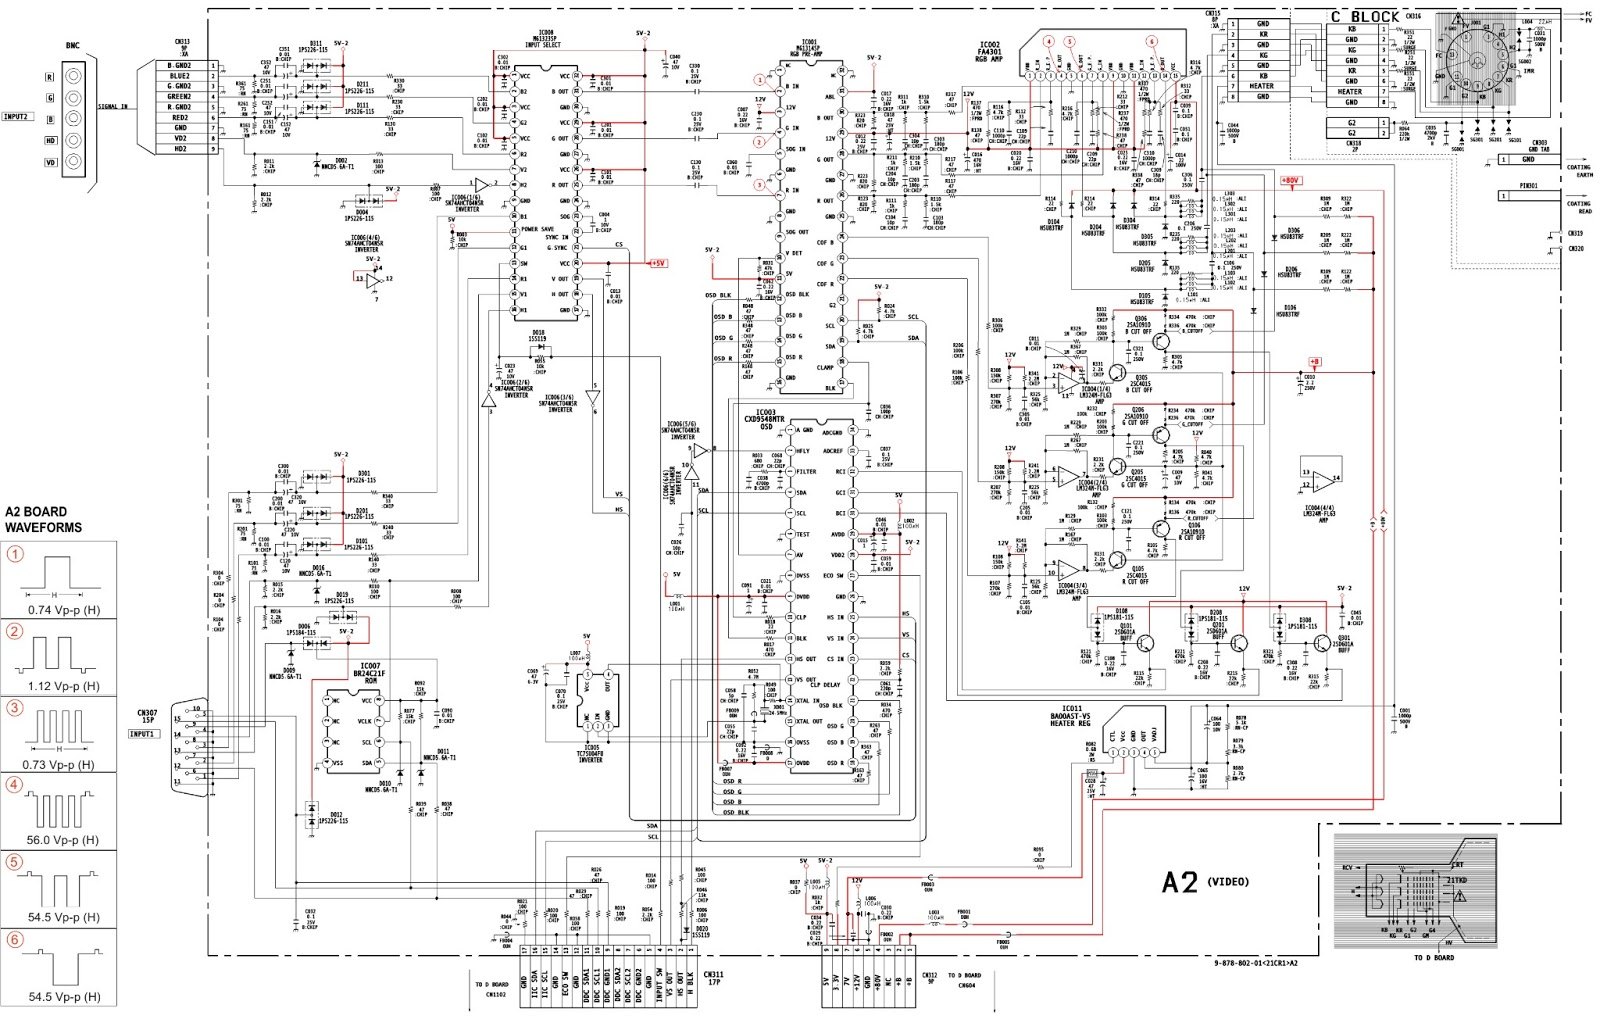 small resolution of xbox 360 schematics diagram wiring diagram for you xbox one headset wiring diagram xbox controller wiring diagram